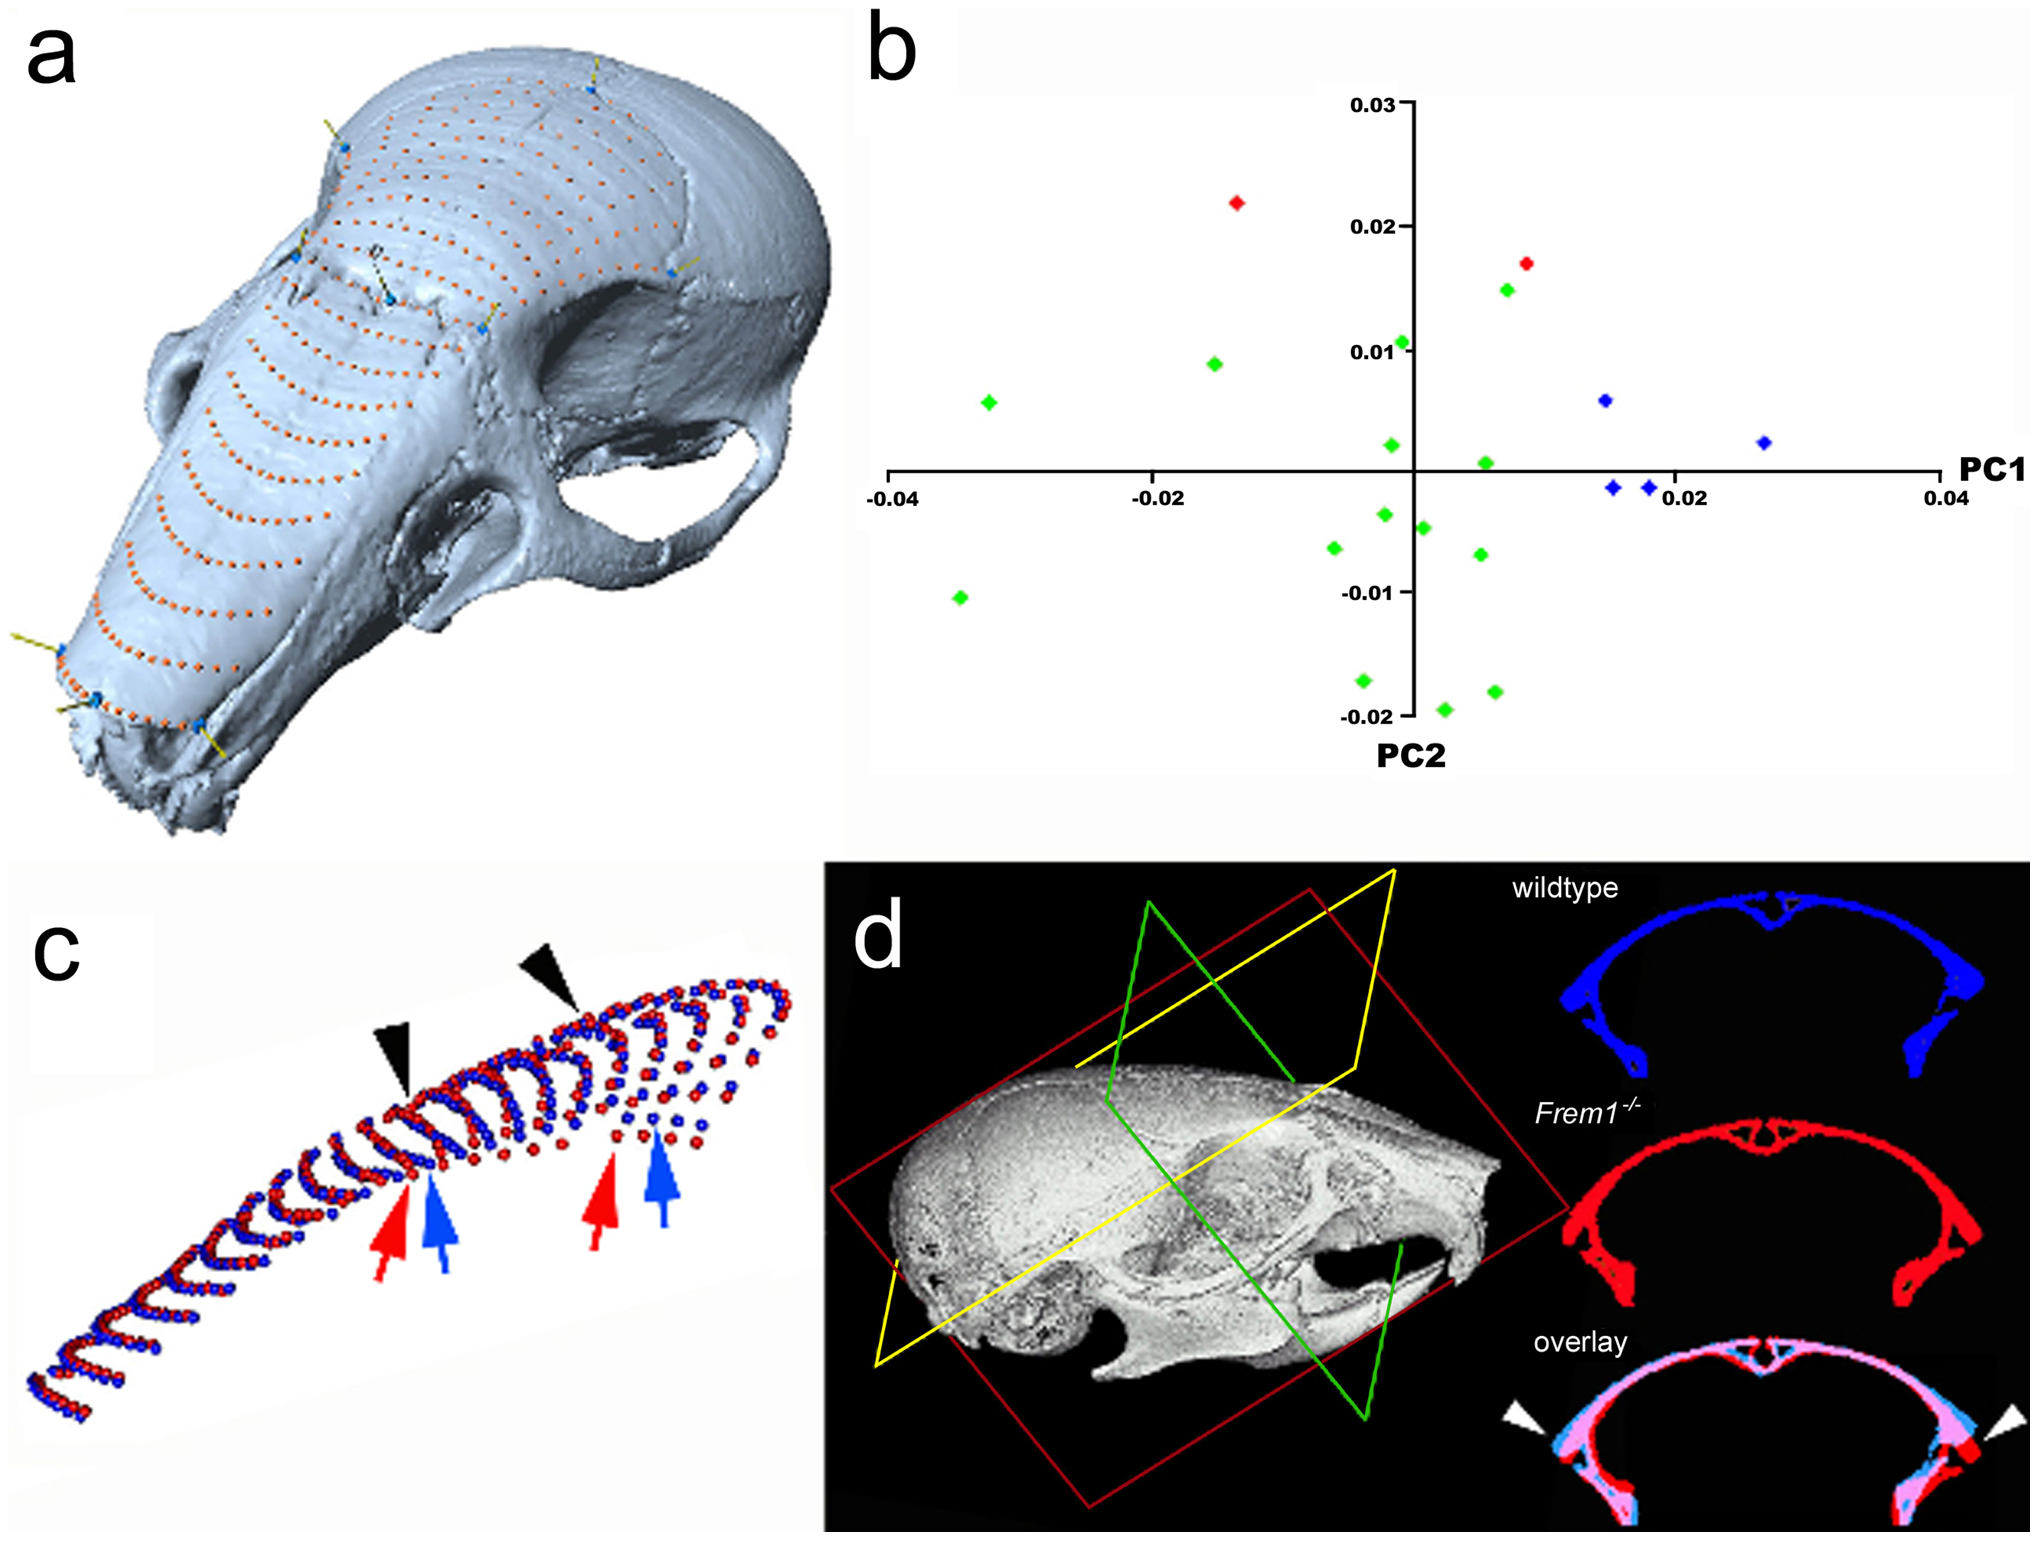 Frem1 mCT and morphometric analysis in mice are consistent with the human MC phenotype.